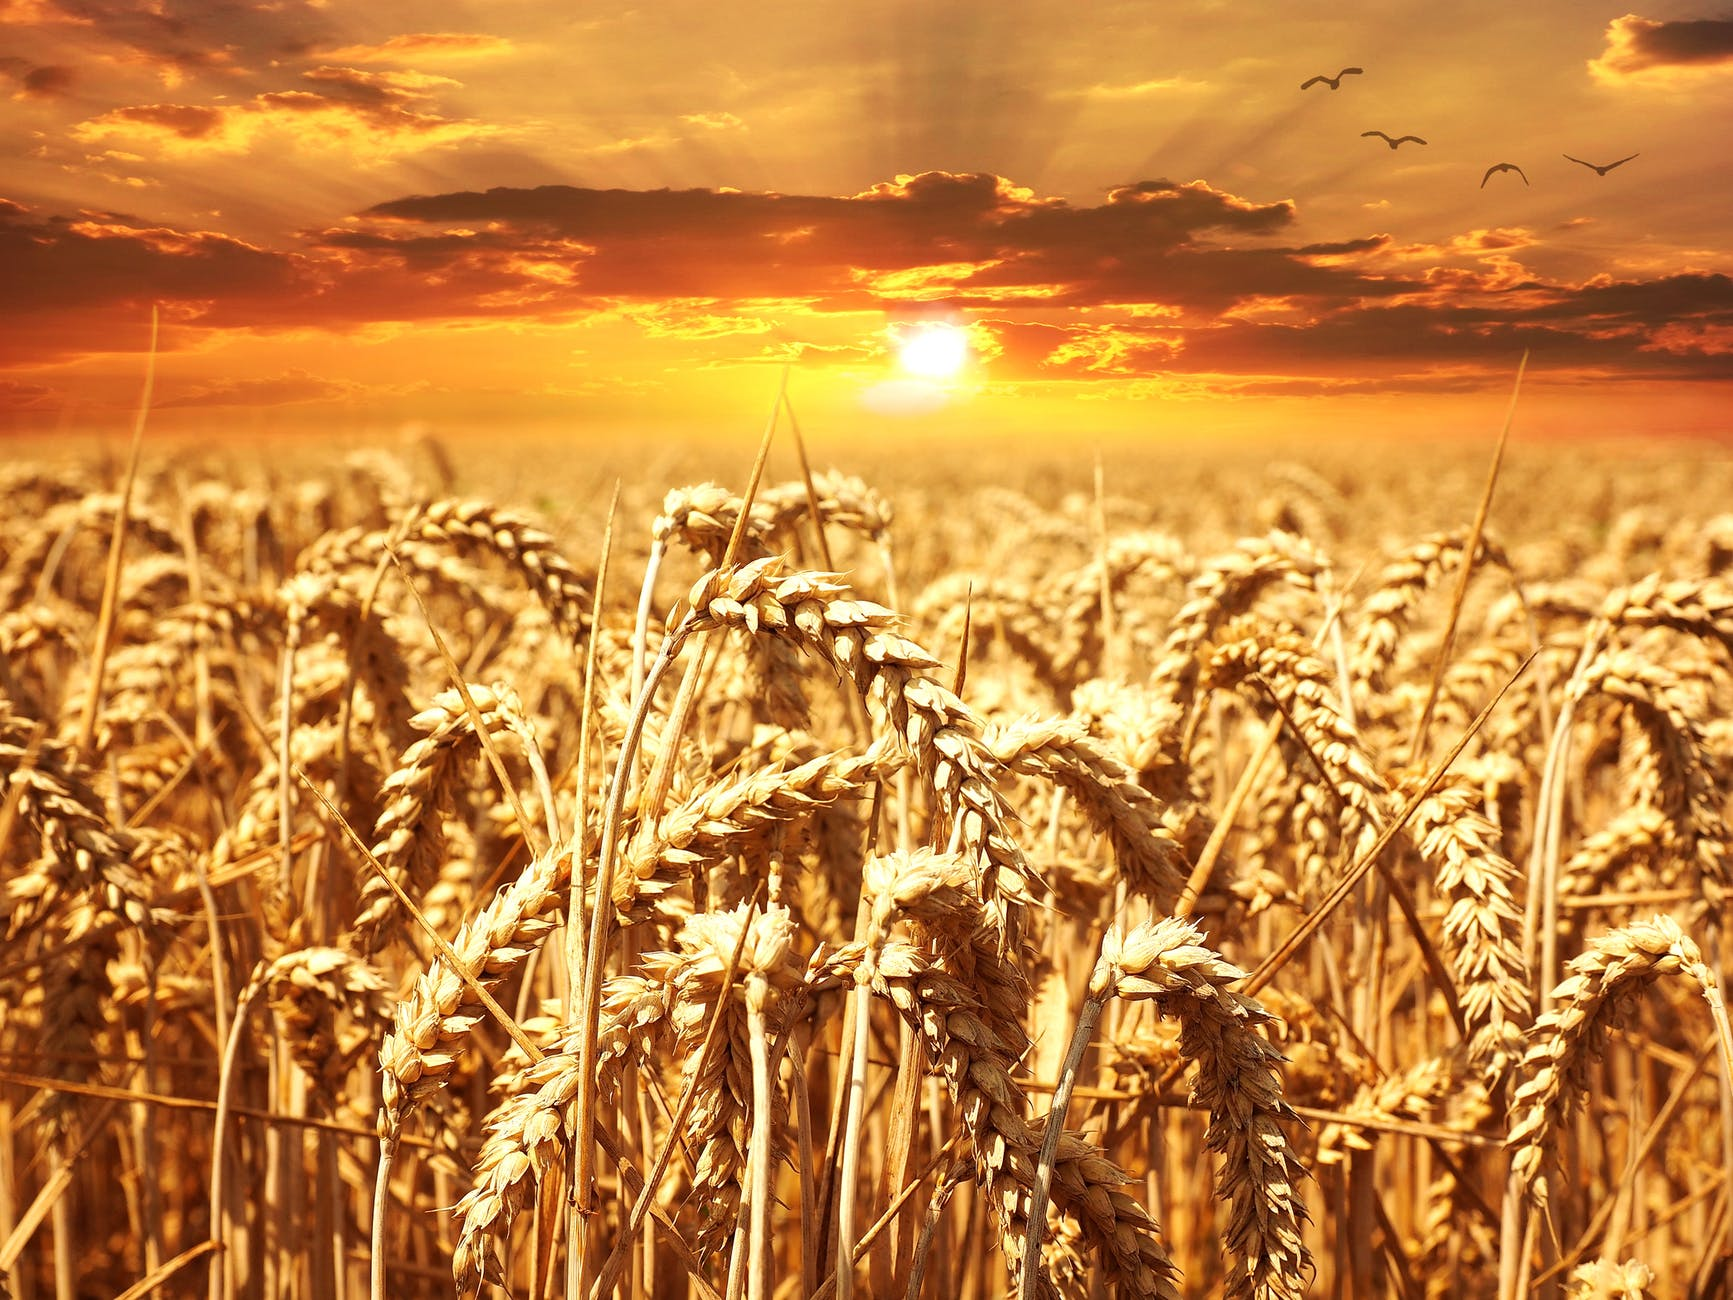 sunset cereals grain lighting